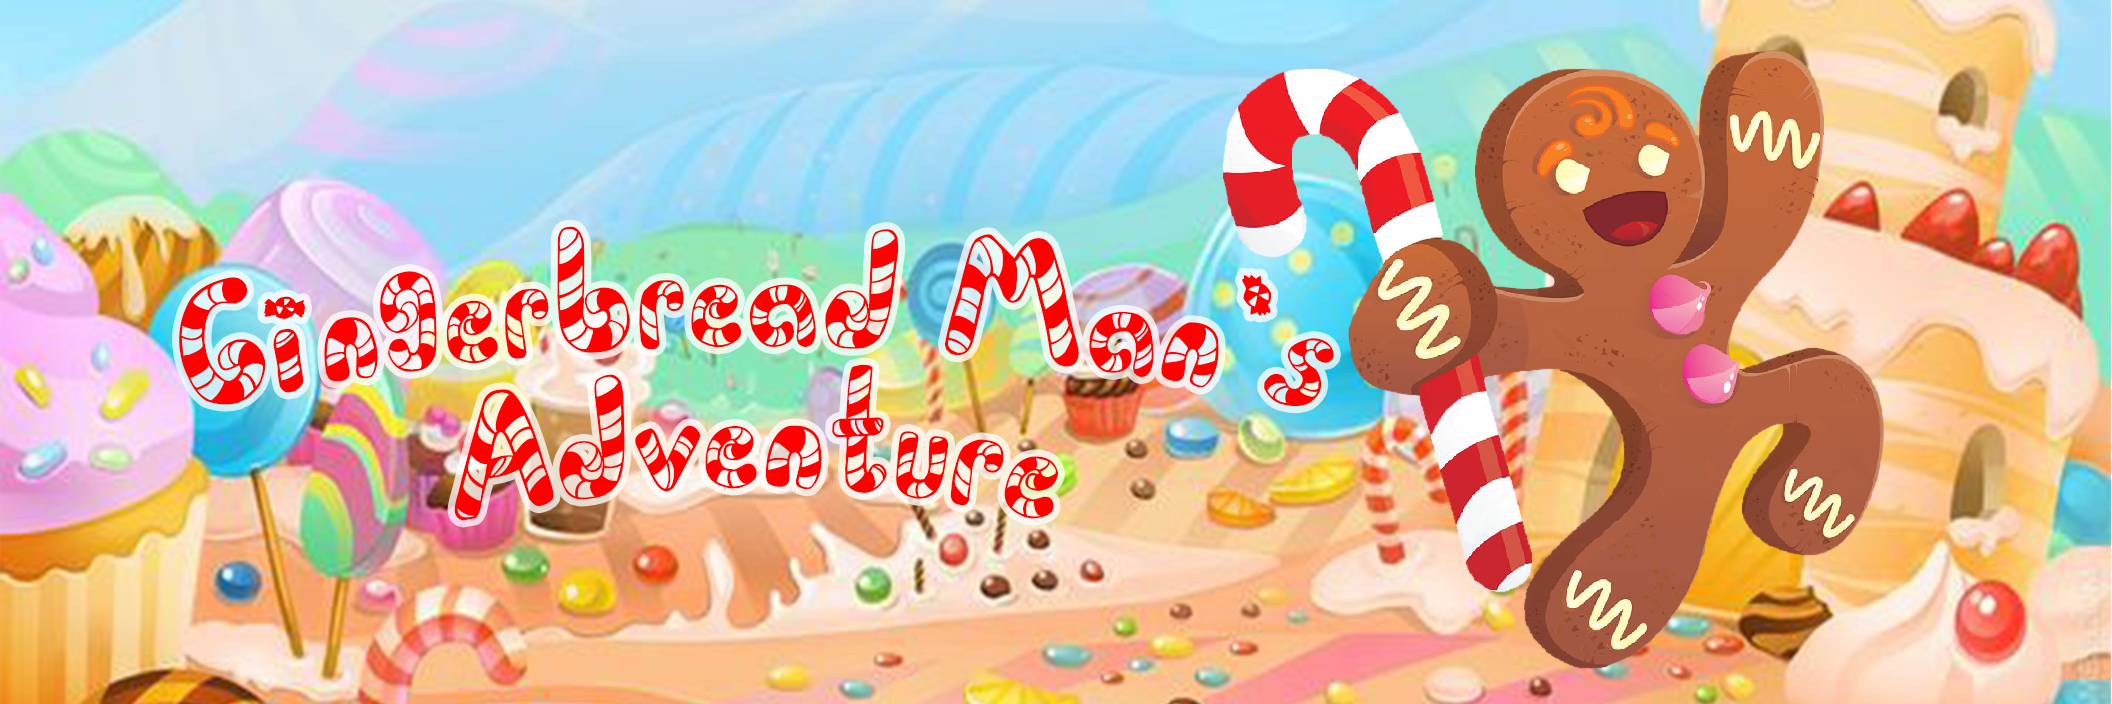 Gingerbread Man's Adventure